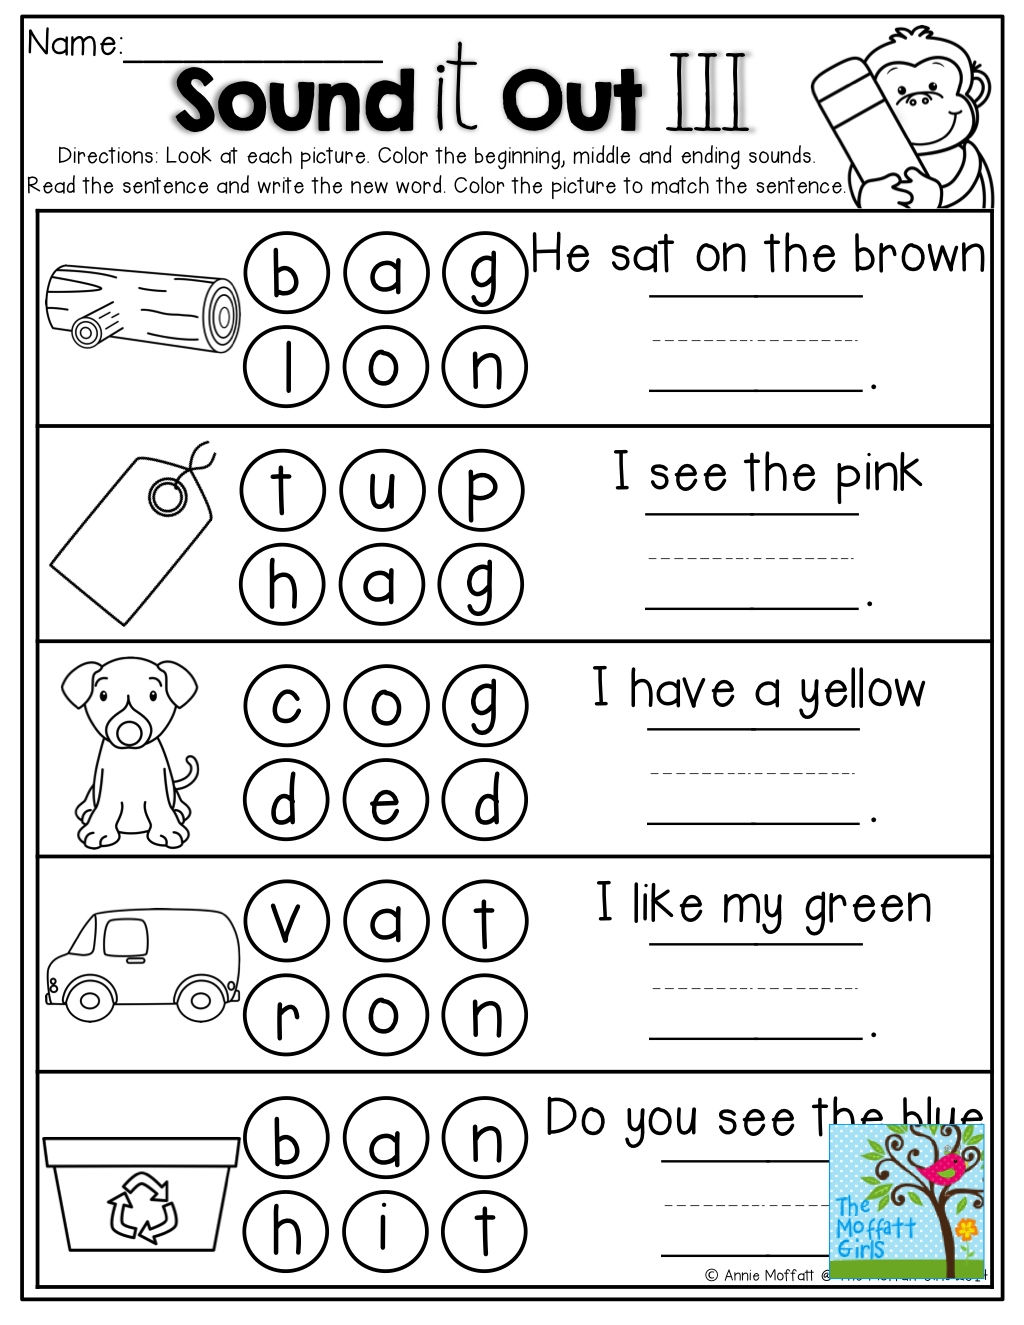 worksheet Middle Sounds Worksheets i can make cvce sentences tons of great printables kinderland sound it out beginning middle and ending sounds write read the sentence back to school printables